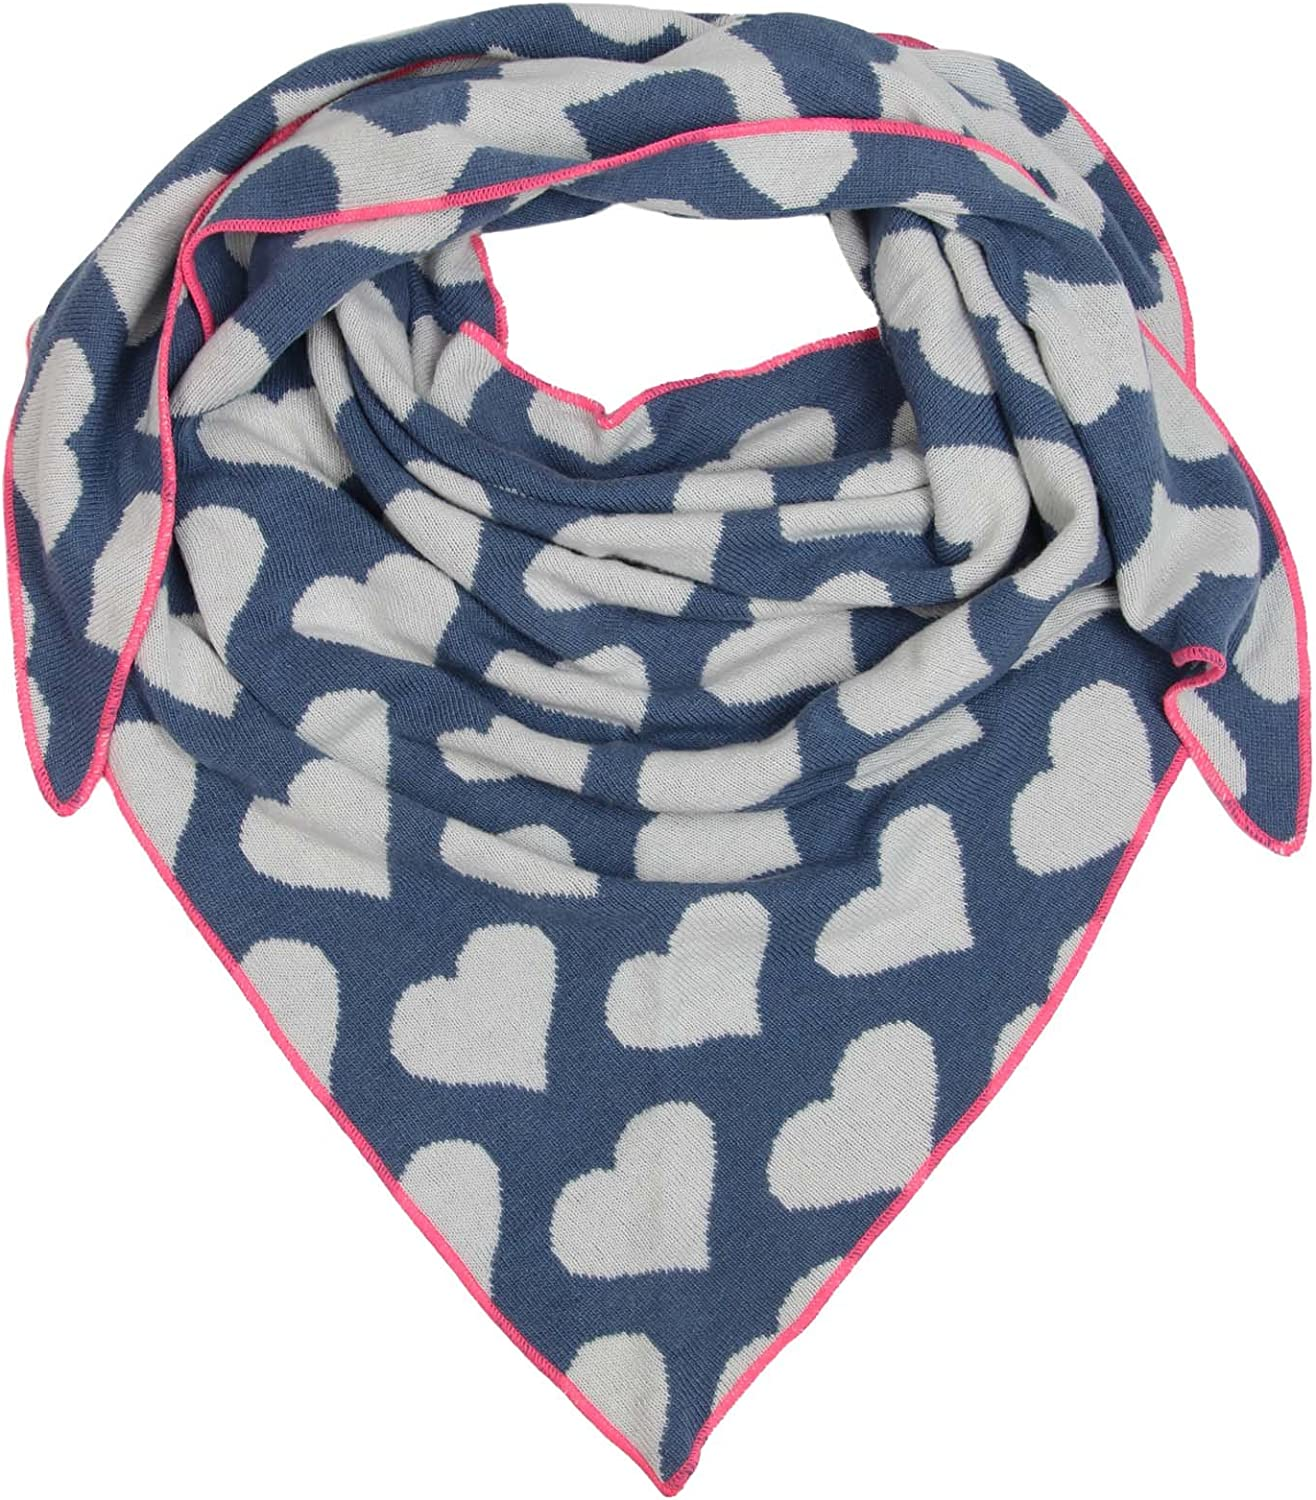 Cashmere Dreams Warehouse Sale% Overstock  Excess Inventory Soft Triangle Scarf with HeartsPremium Quality Warm Knitwear